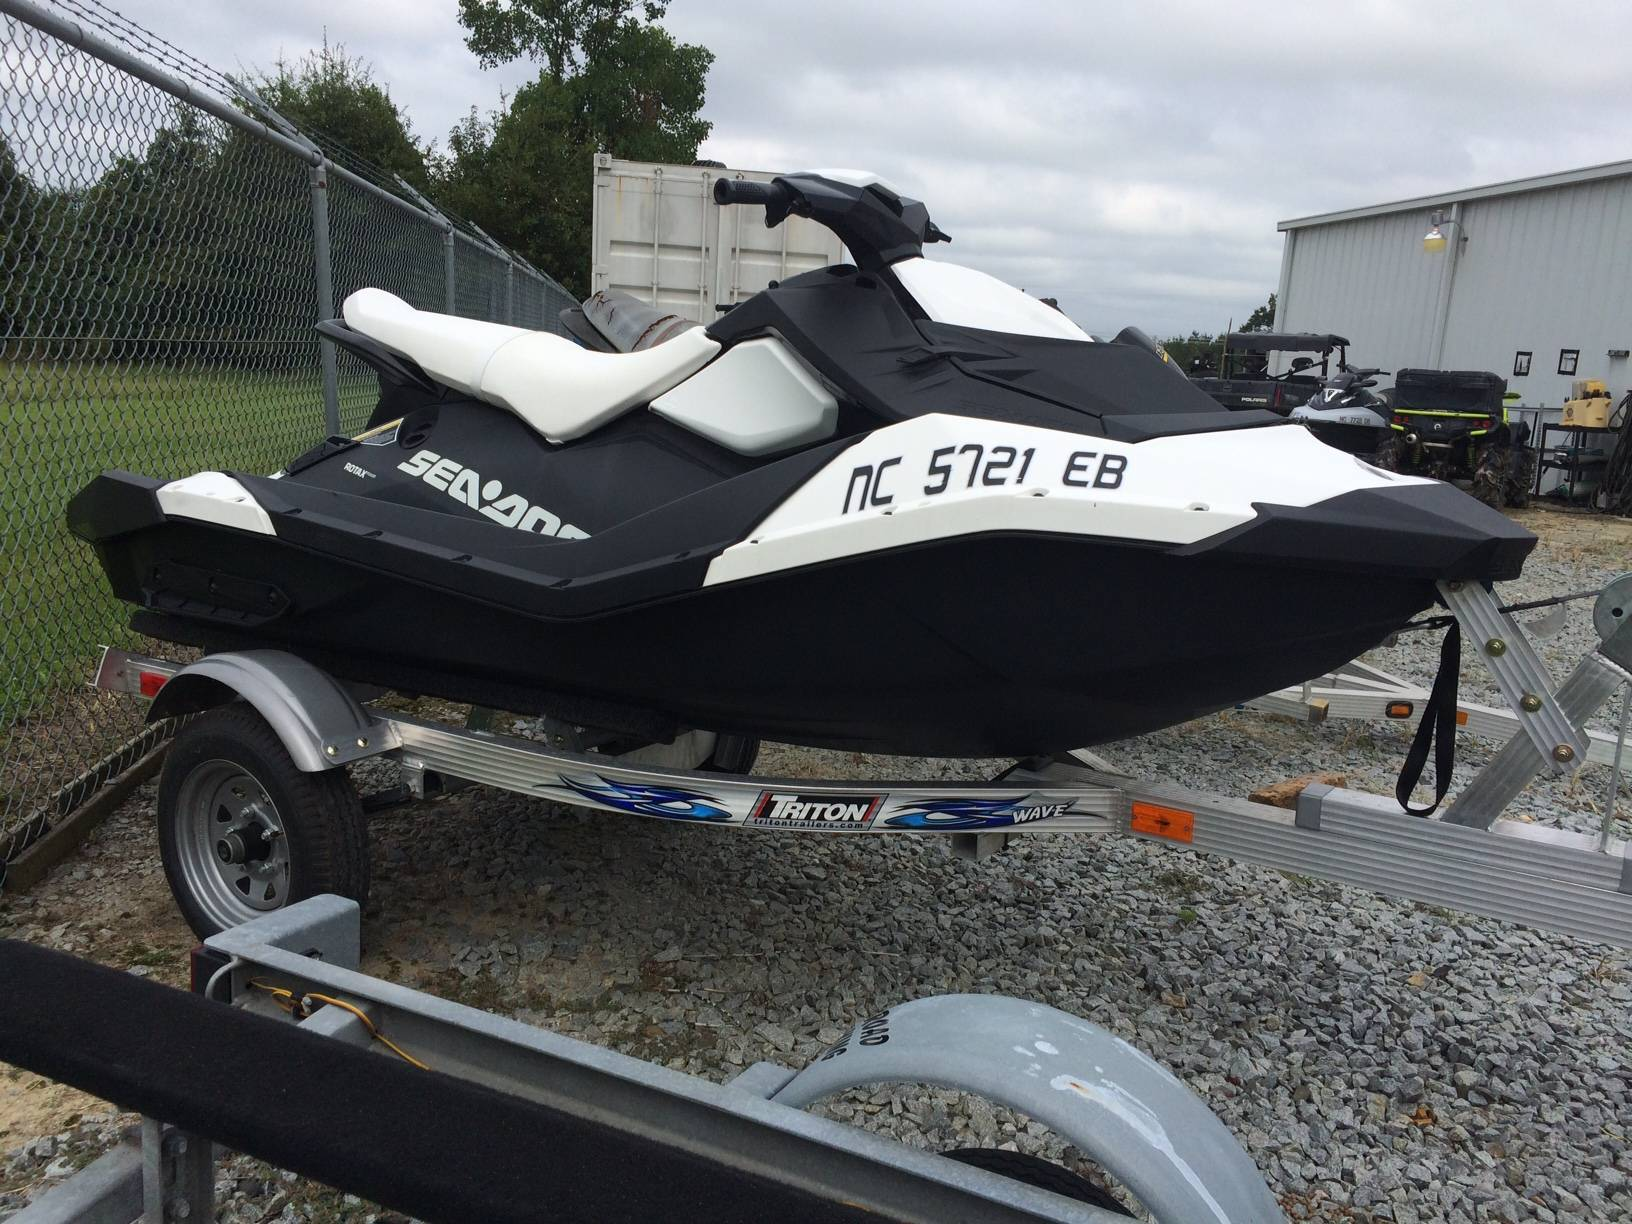 2015 Spark 3up 900 H.O. ACE iBR Convenience Package